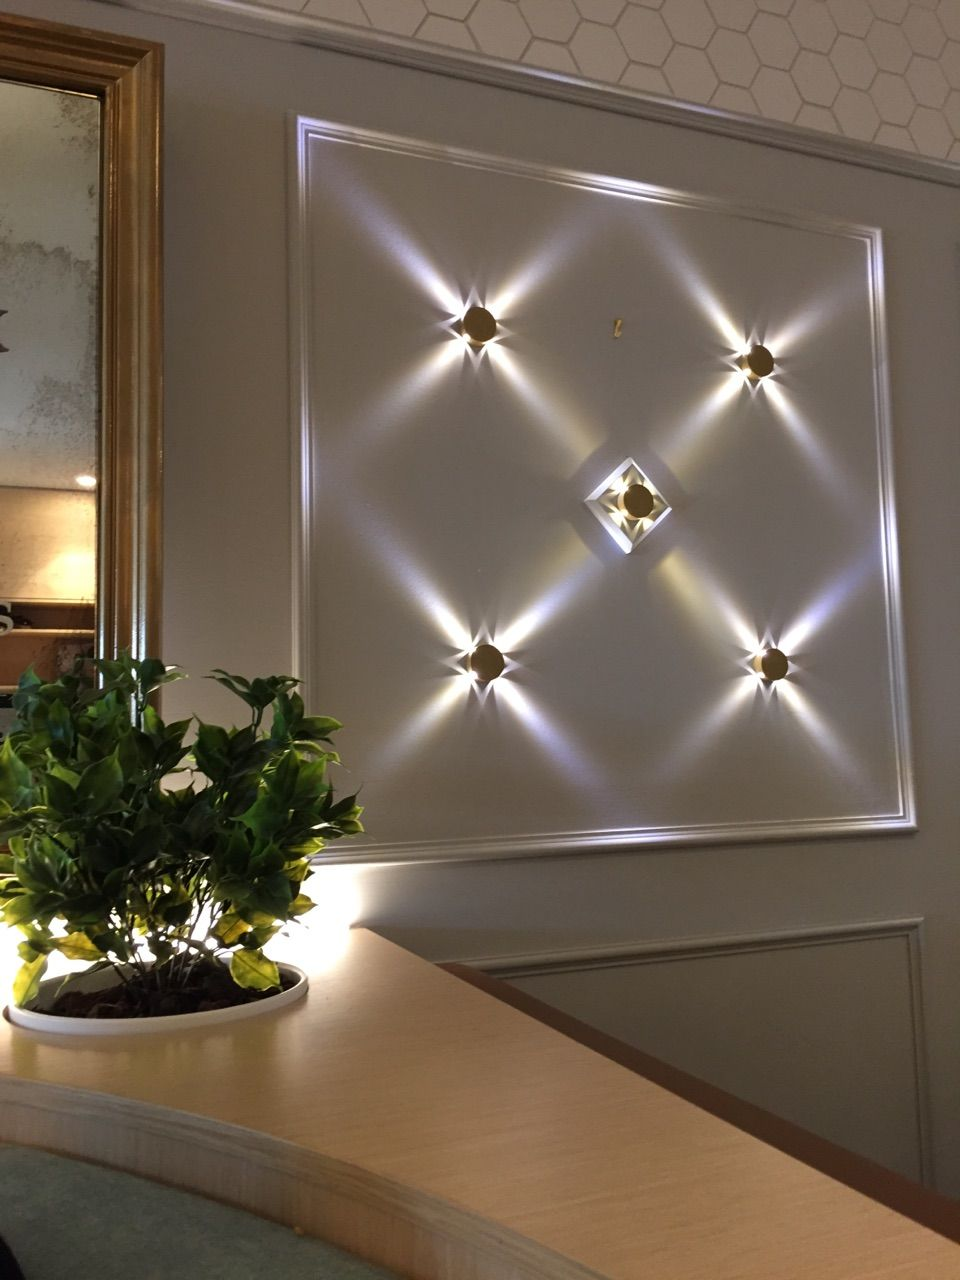 New Diamond Lighting Design Ideas For Your Home In